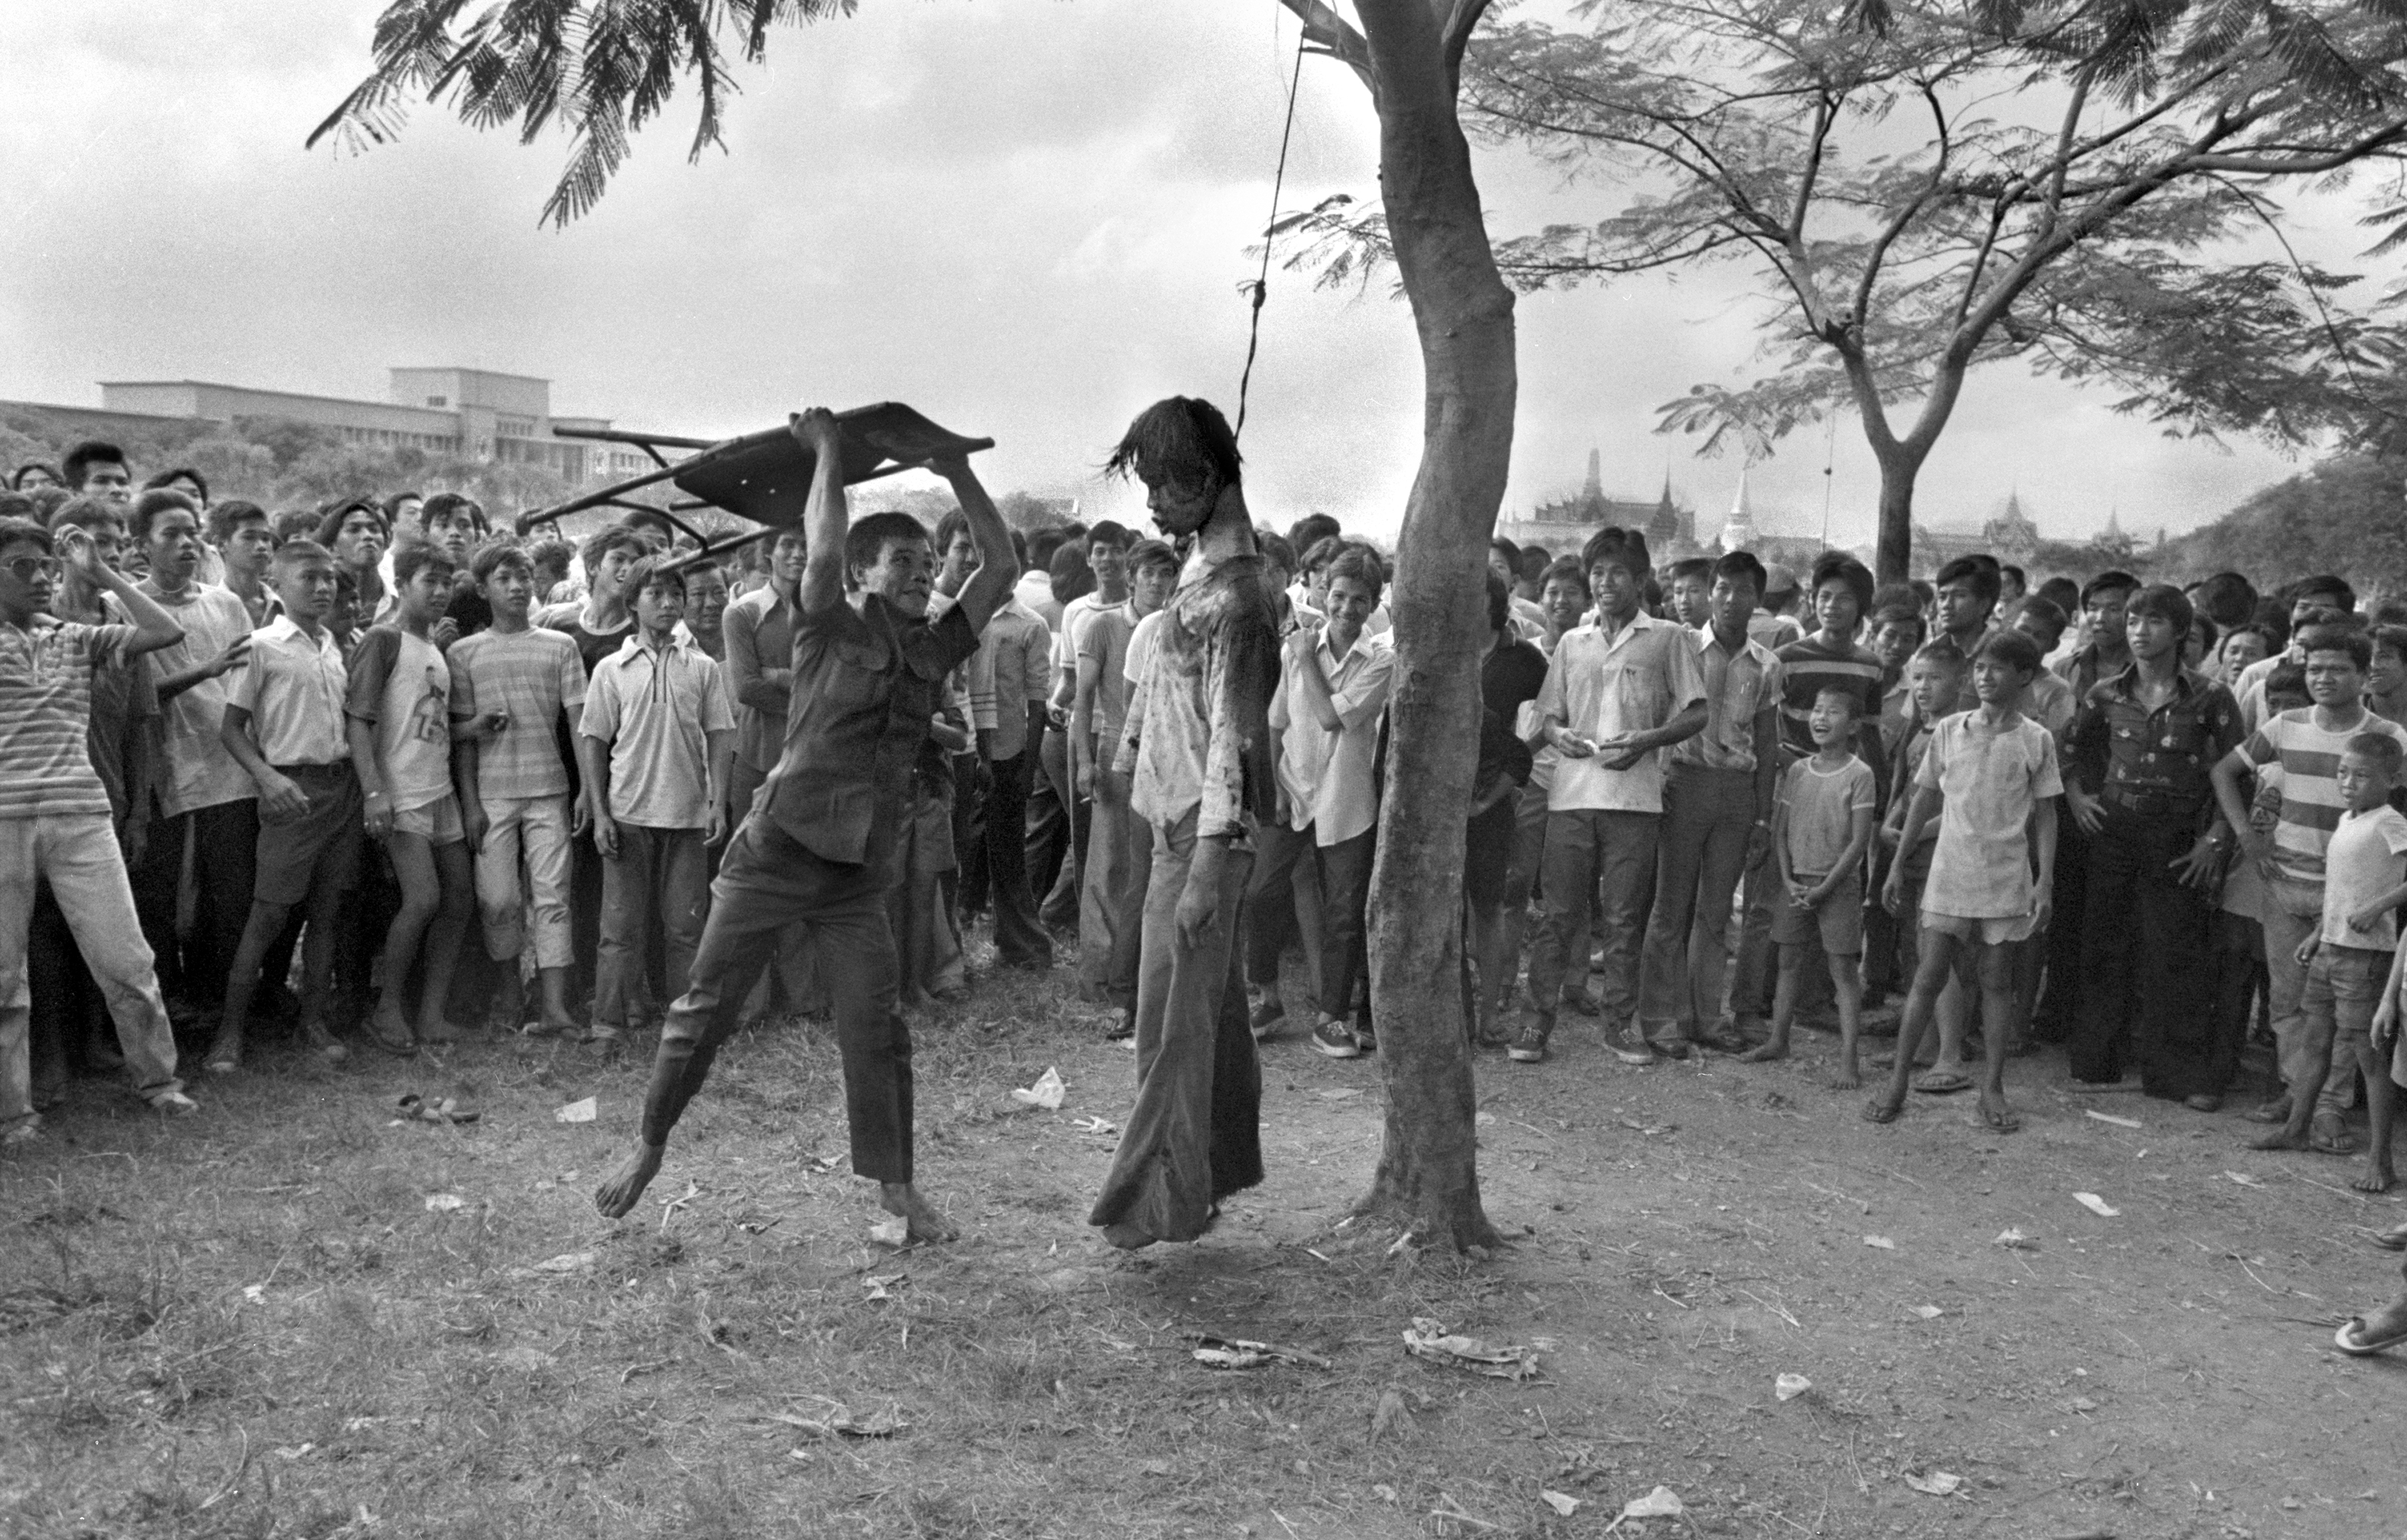 A right-wing supporter strikes the lifeless body of a hanged student outside Thammasat University in Bangkok, Oct. 6, 1976. Police stormed the university after students demanded expulsion of a former military ruler and barricaded themselves in the school. (AP Photo/Neal Ulevich)